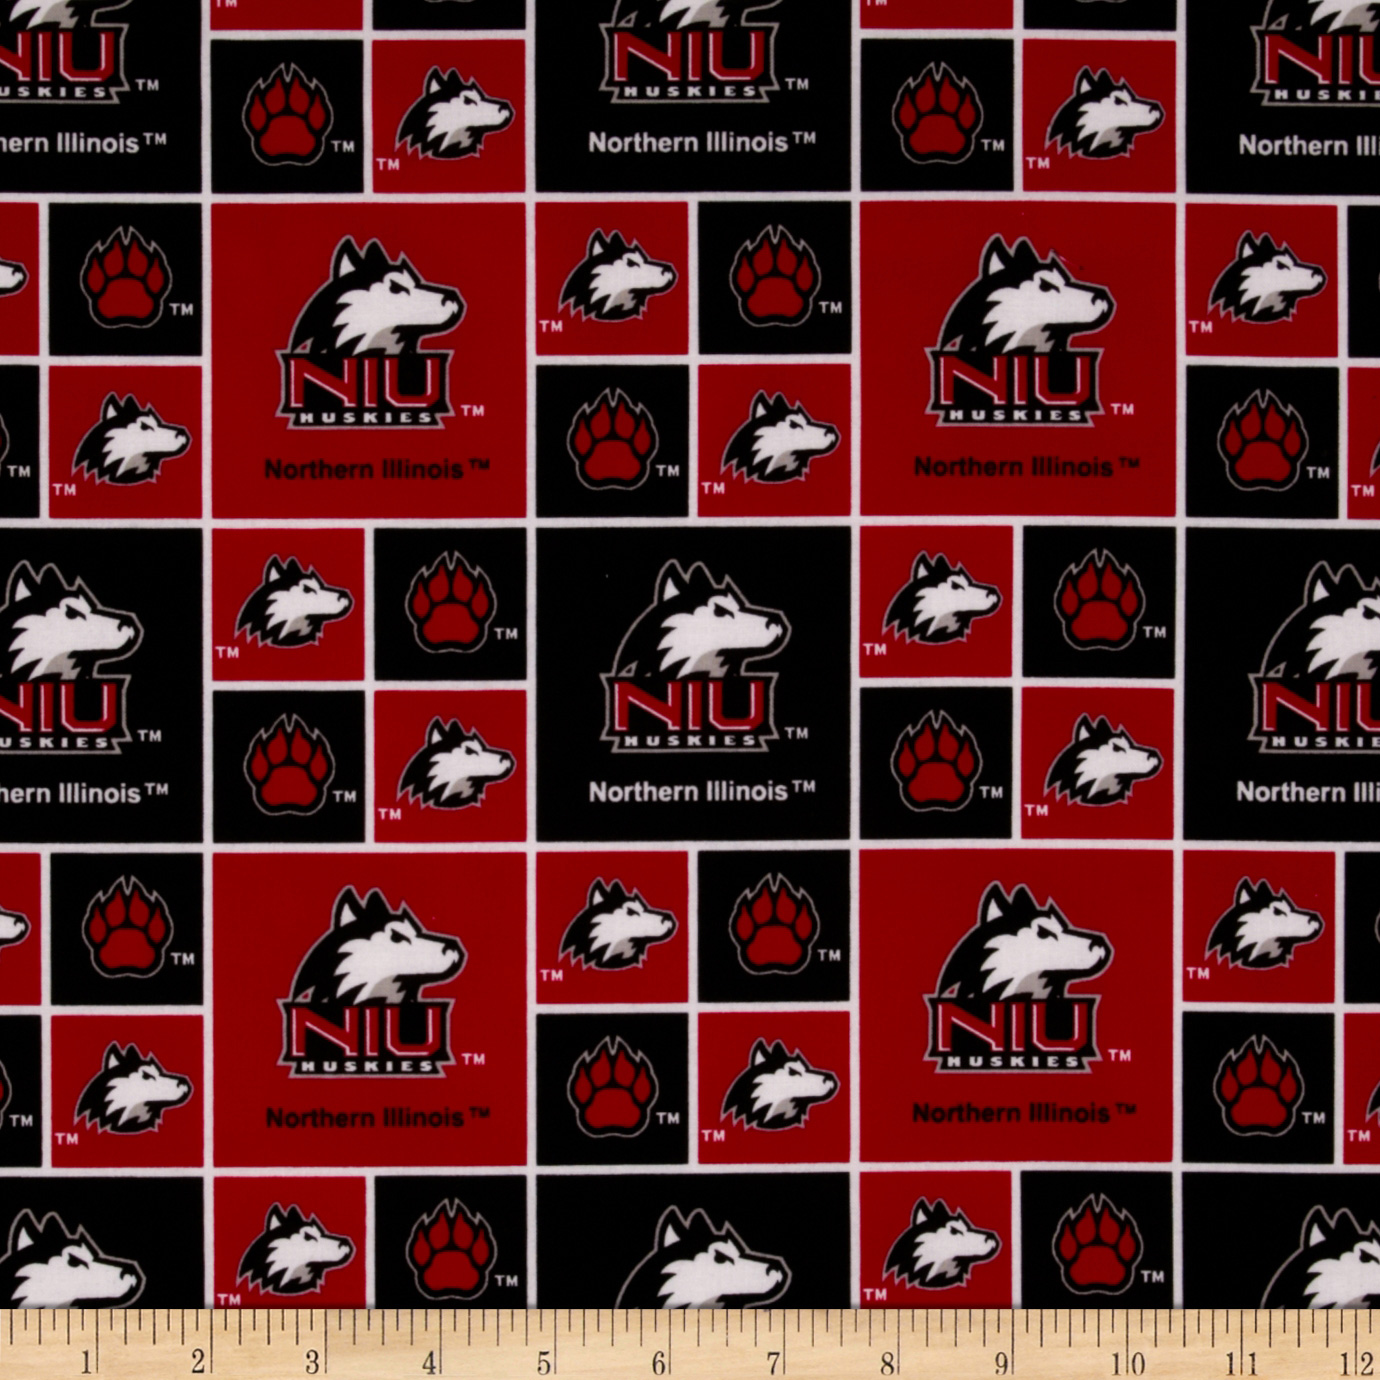 Collegiate Cotton Broadcloth Northern Illinois University Fabric